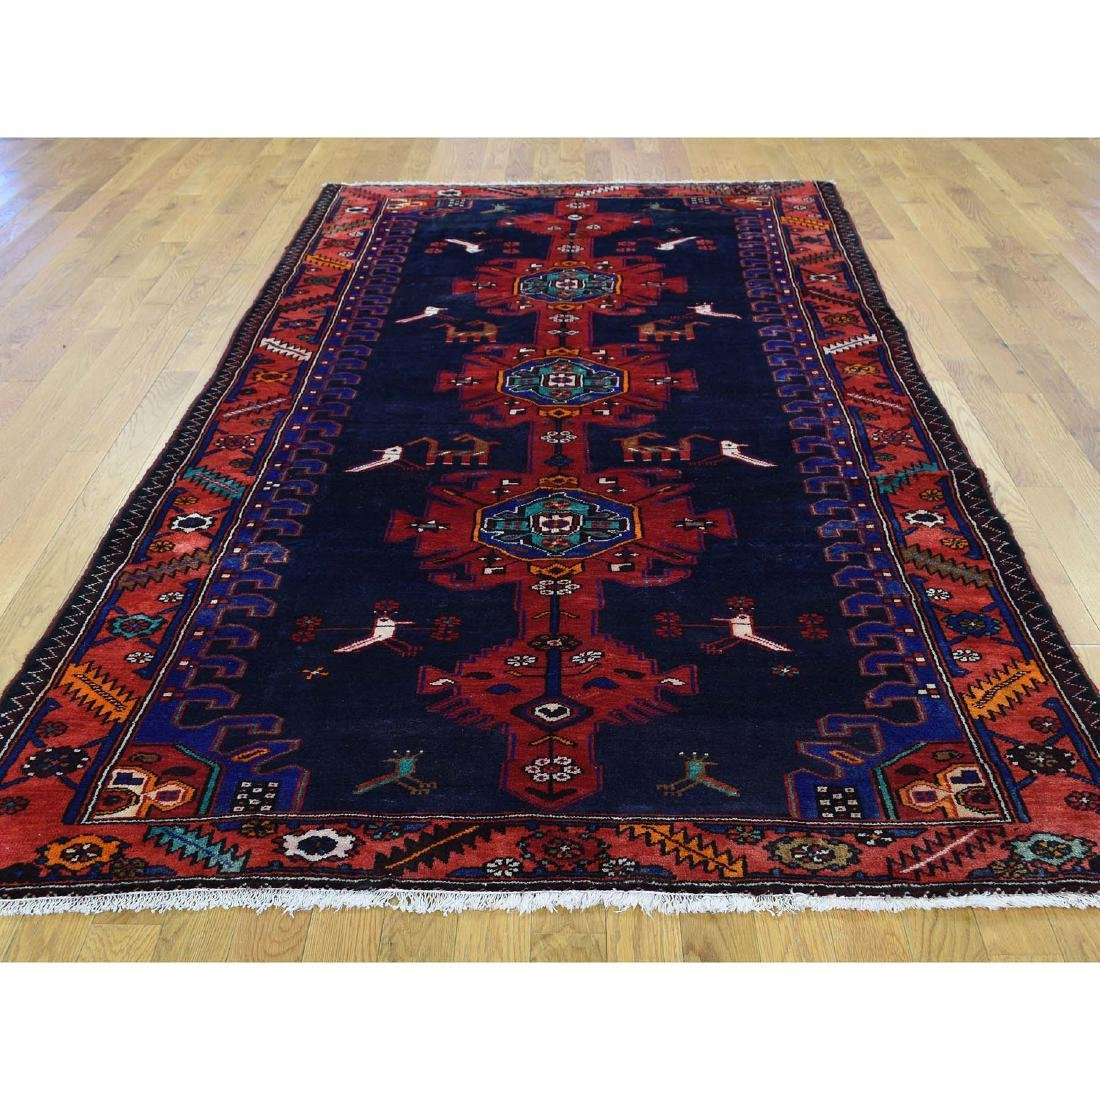 Hand Knotted Semi Antique Persian Hamadan Rug 5.1x9 - 2